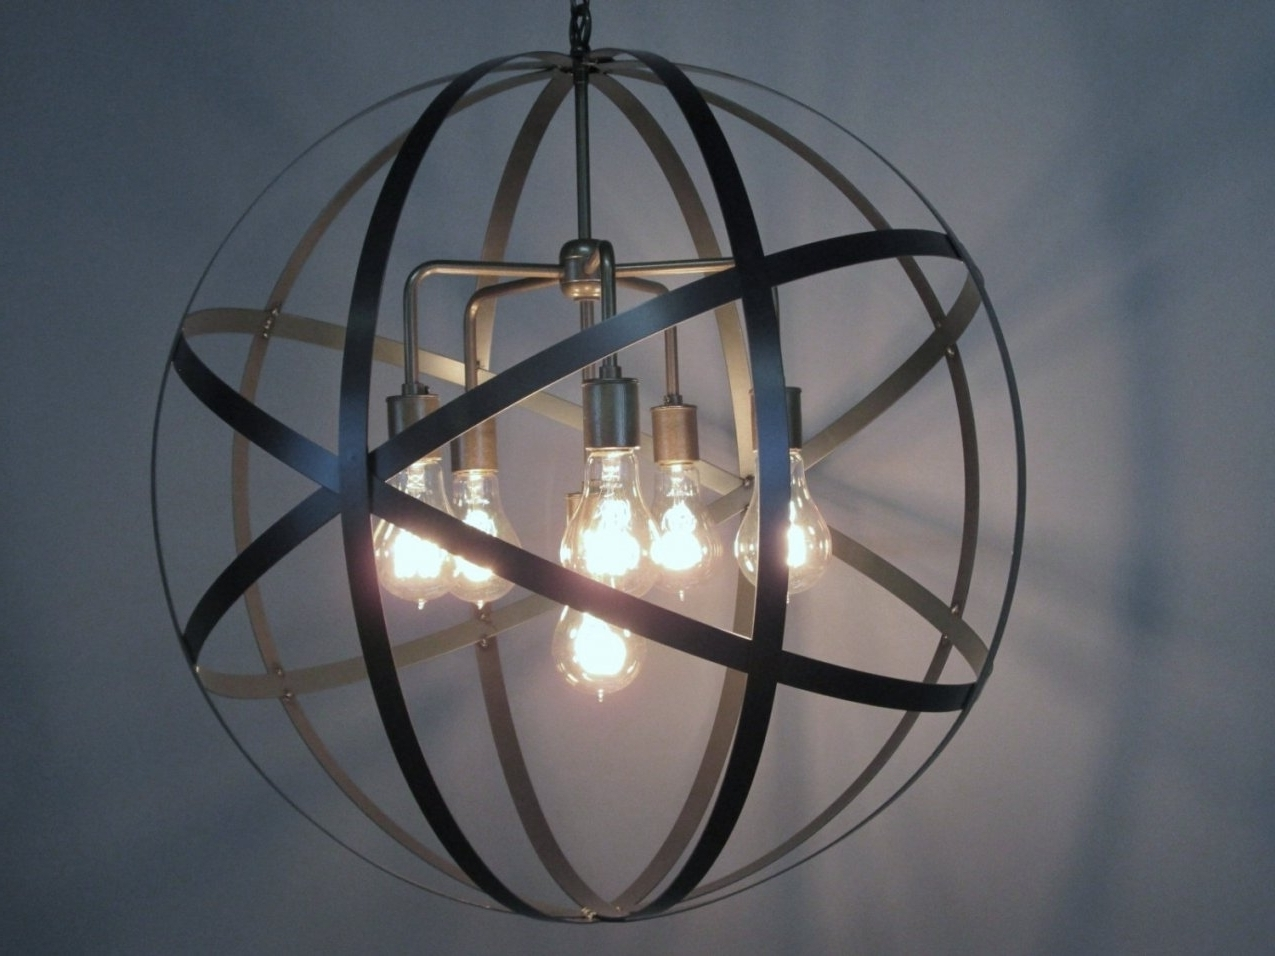 Orb Chandeliers Throughout Most Popular Accessories: Globe Metal Design Orb Chandelier With Lights Bulb (View 7 of 15)